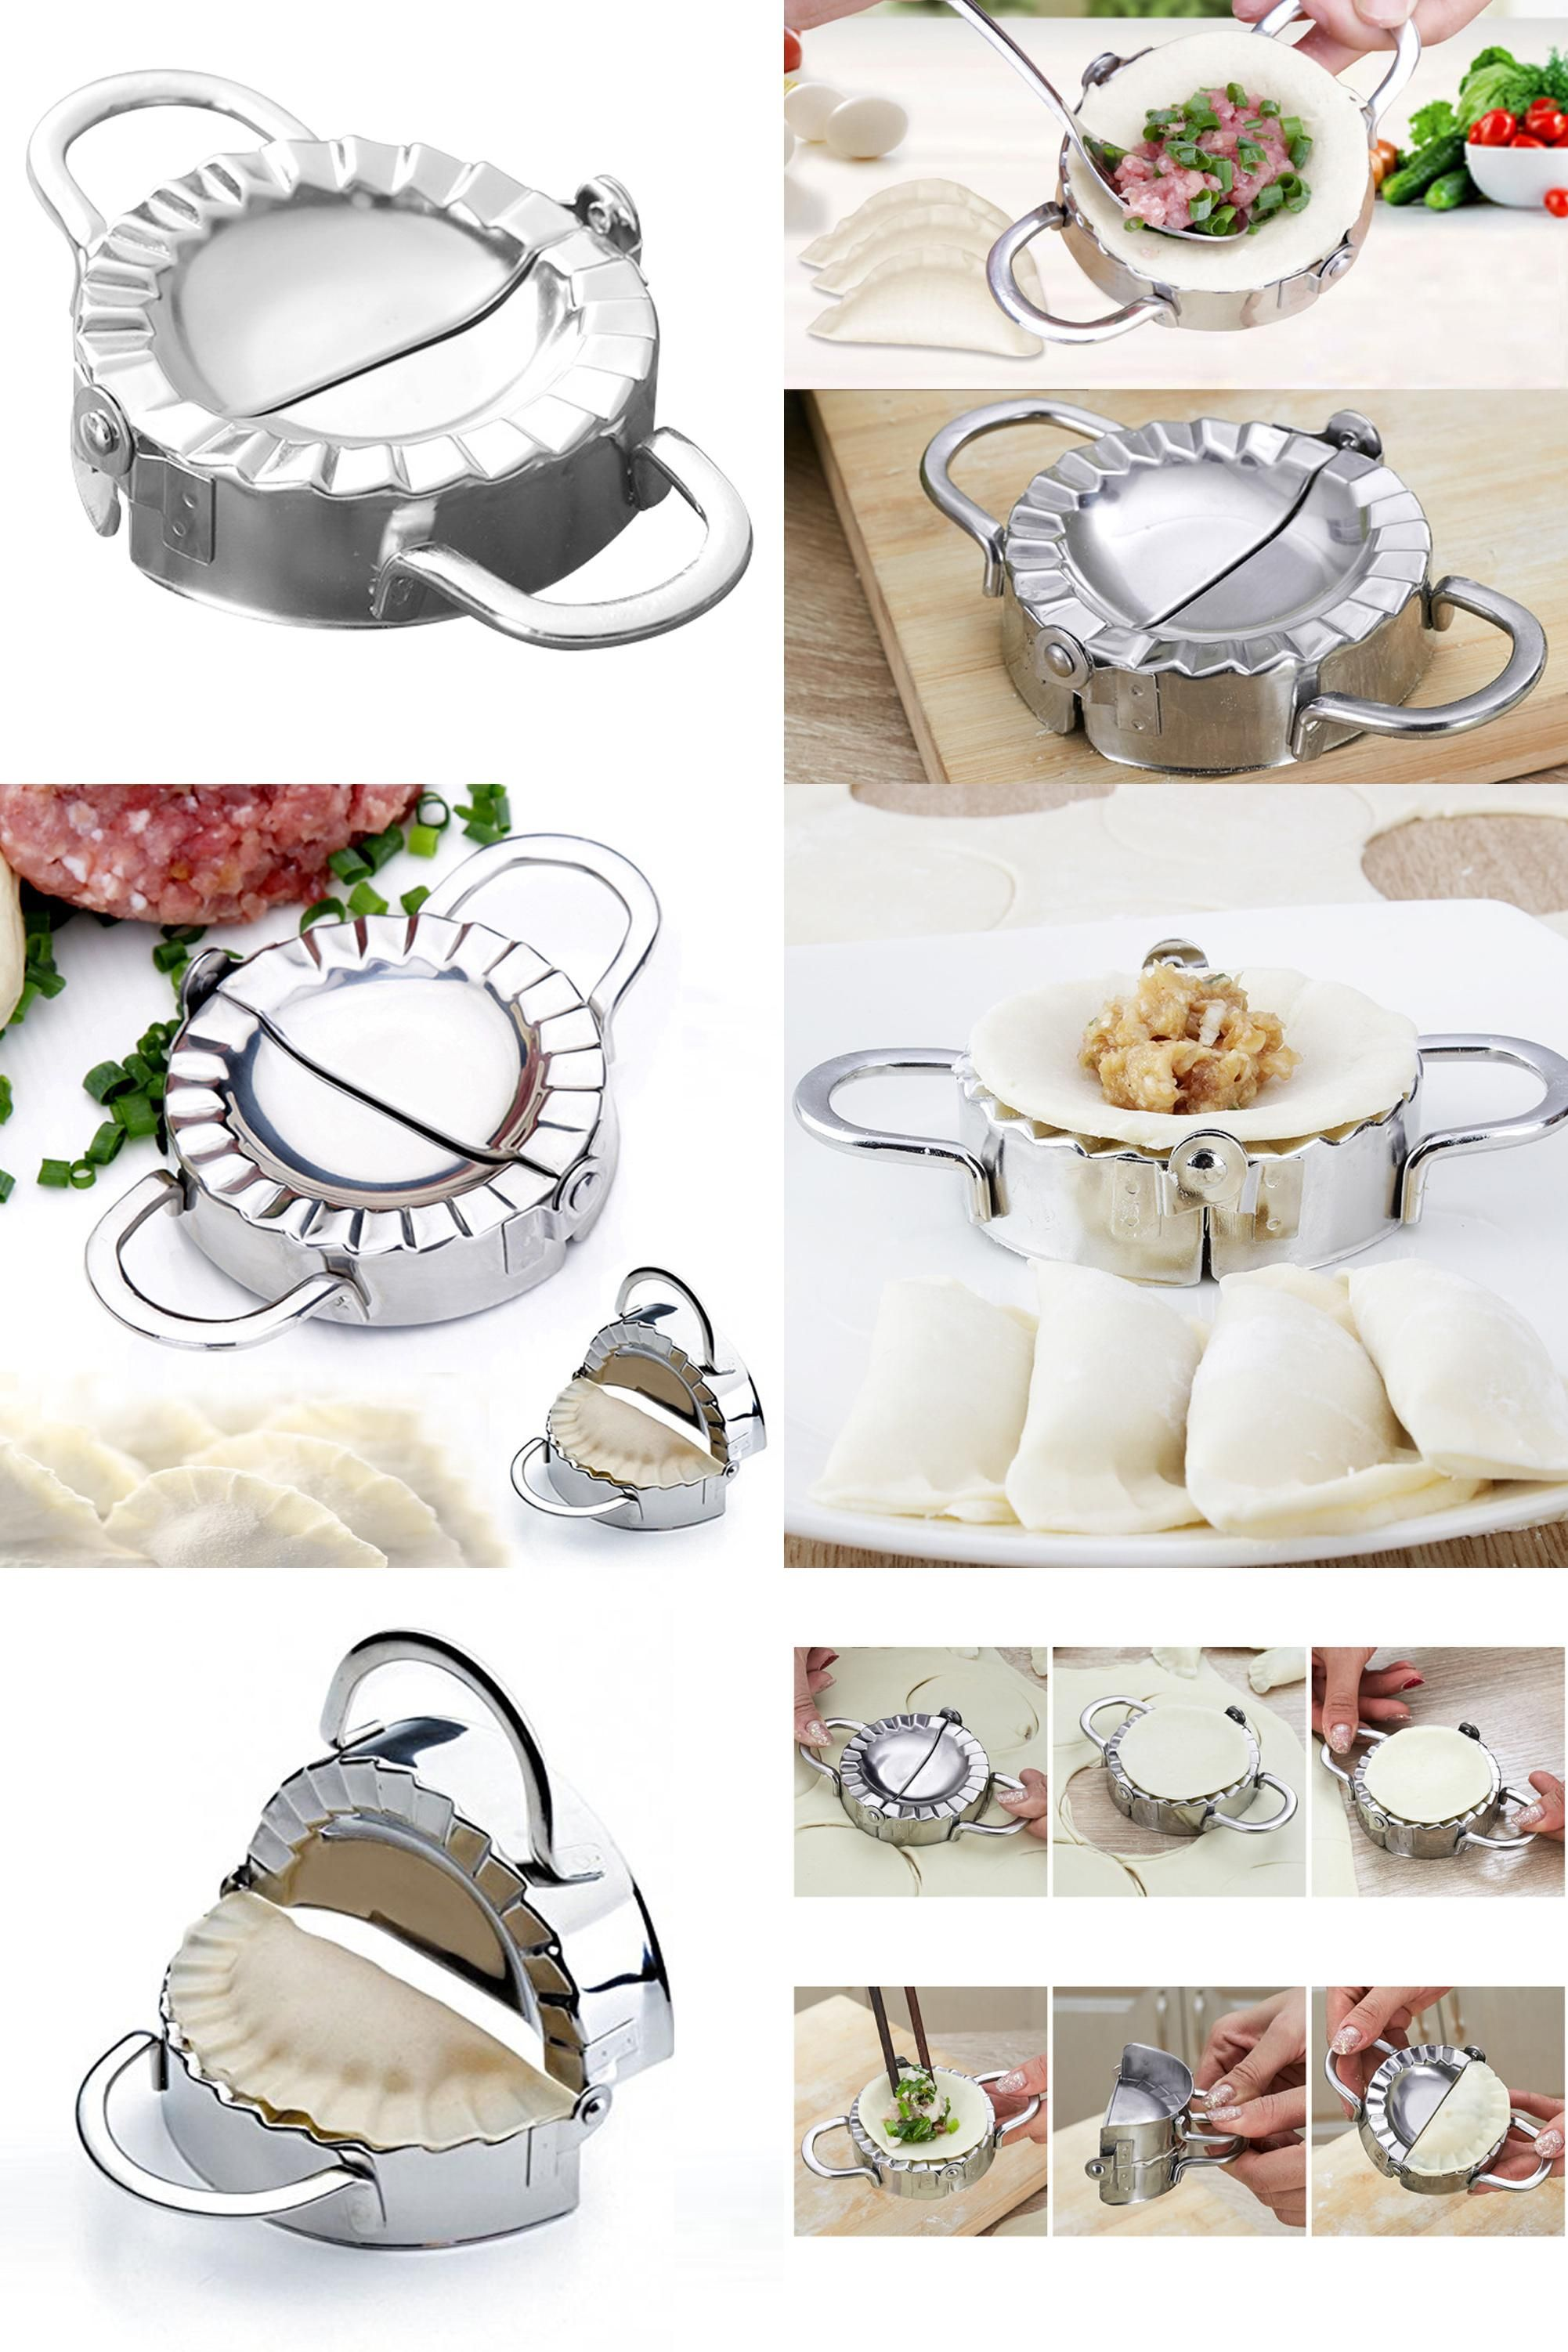 Tools stainless steel wraper dough cutter pie ravioli dumpling mould -  Visit To Buy 2017 1pcs New Pastry Tools Stainless Steel Dumpling Maker Wraper Dough